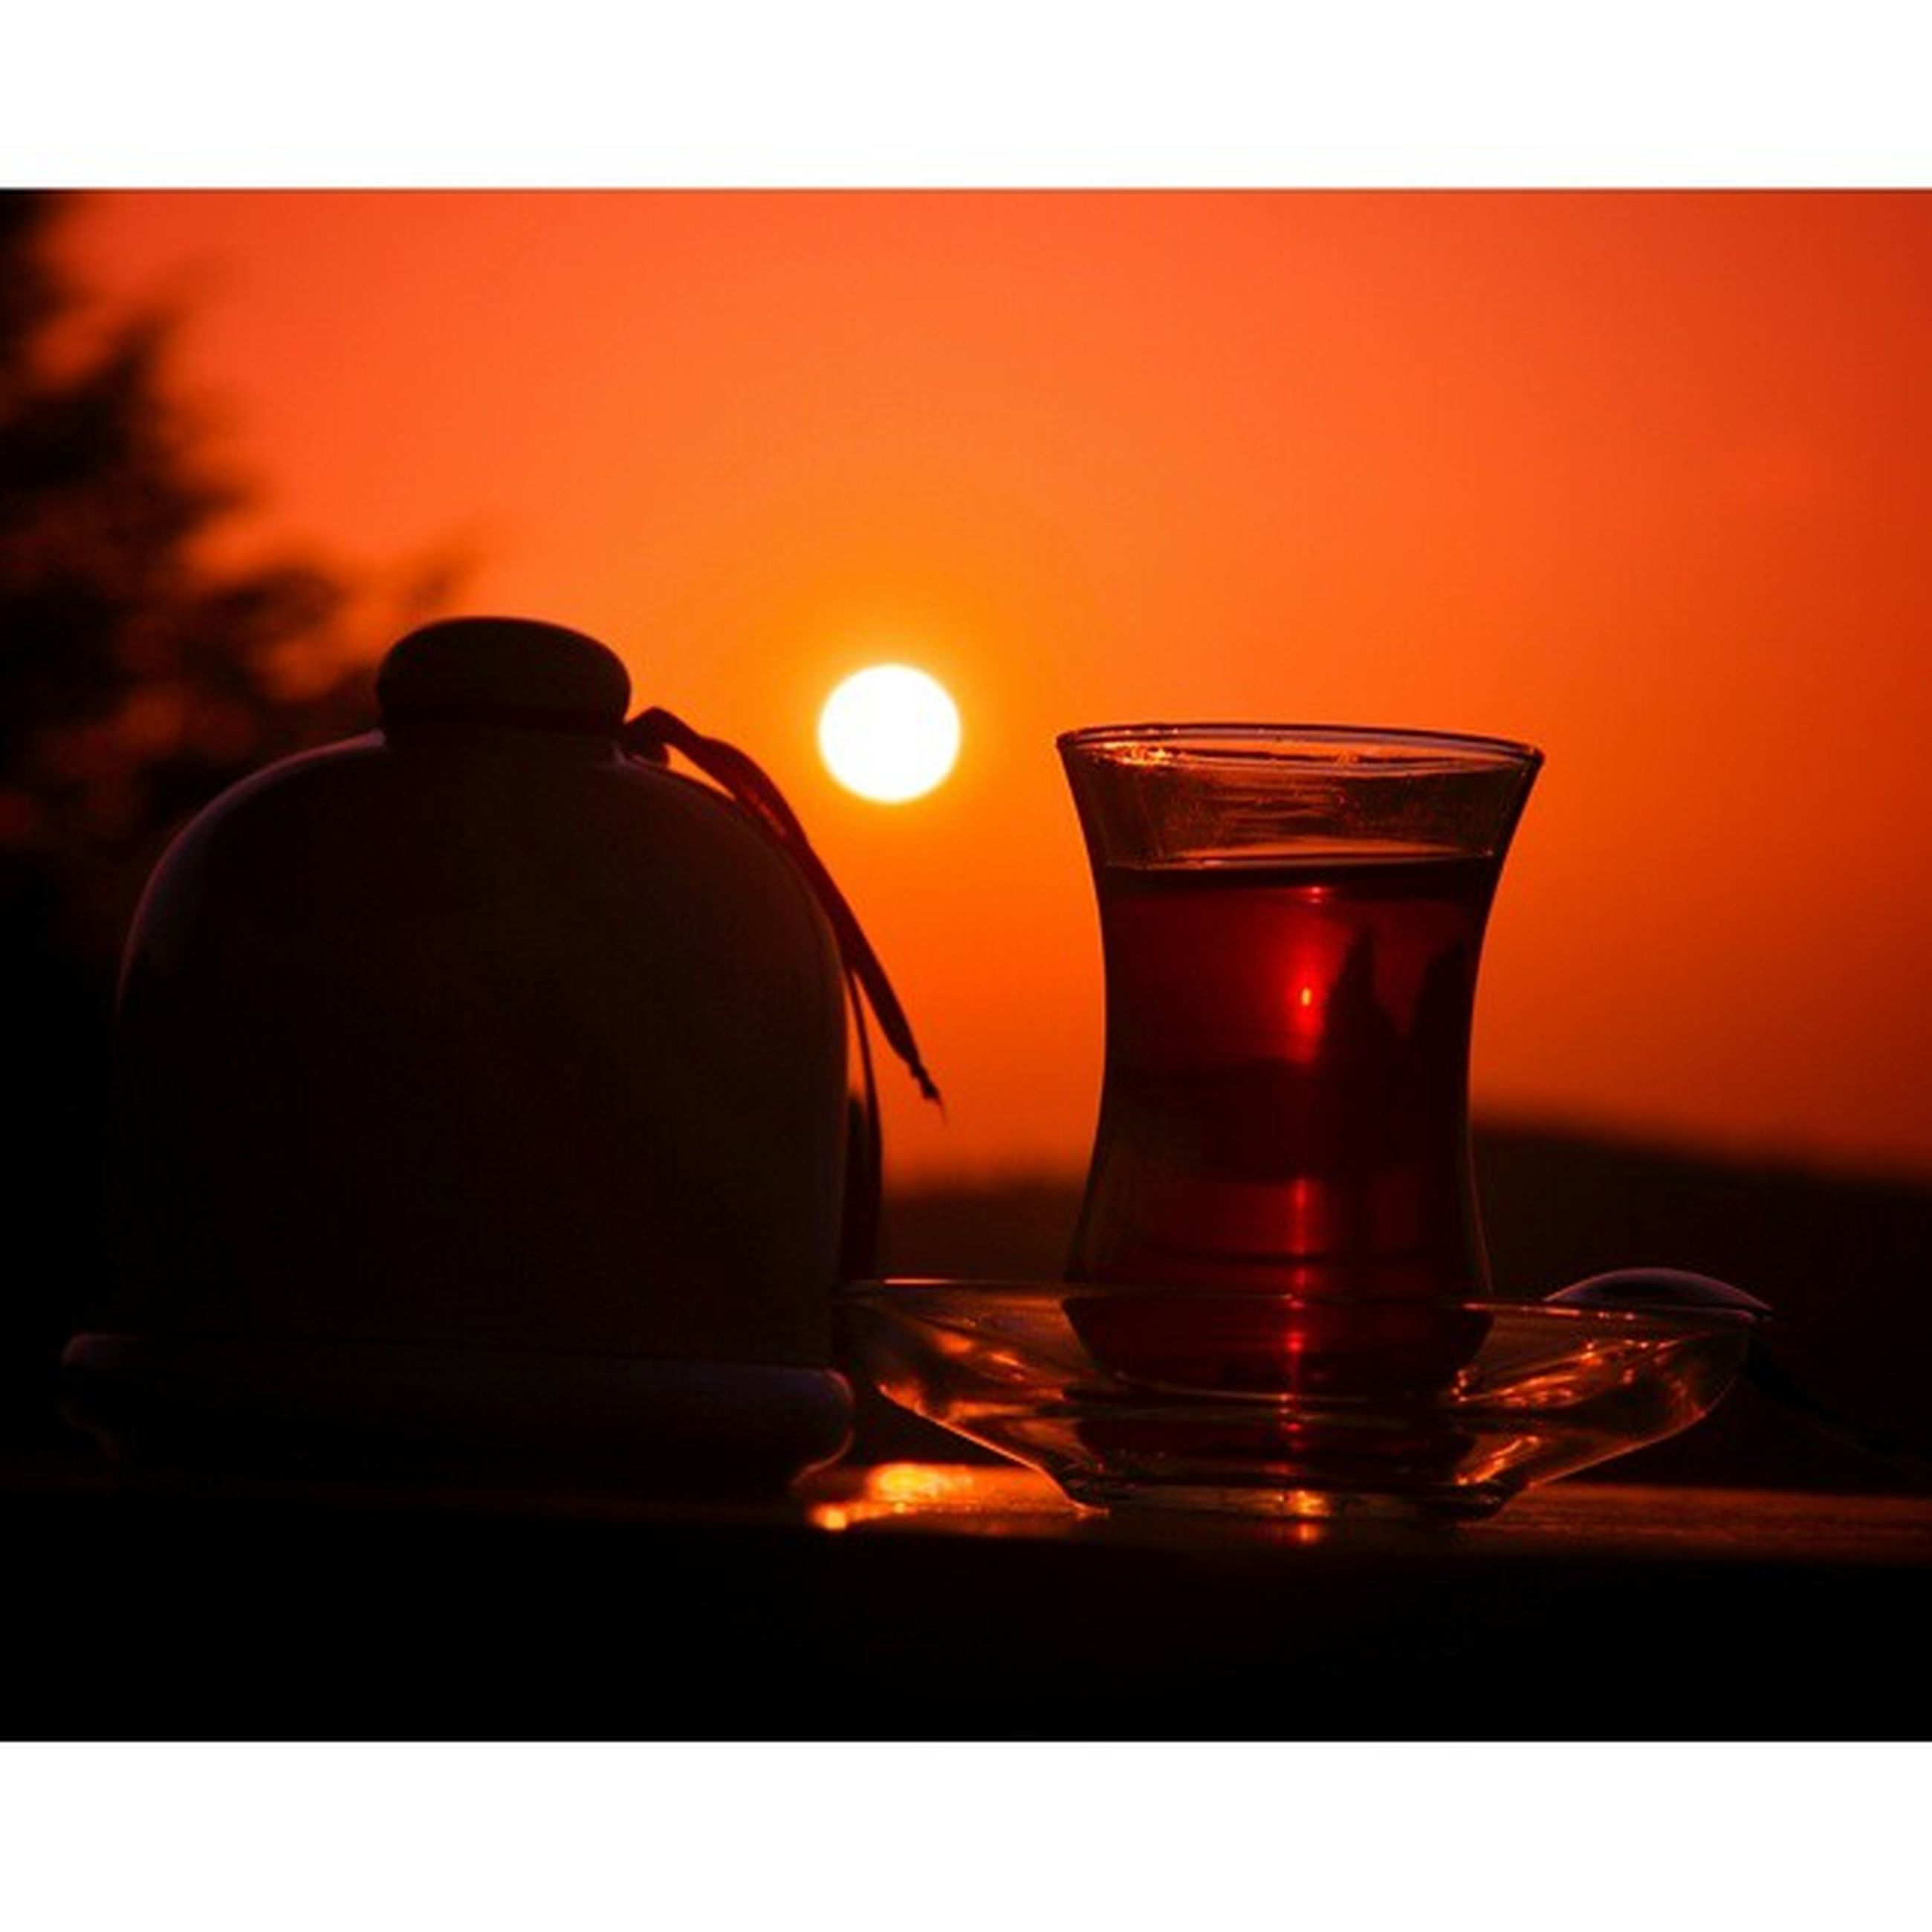 transfer print, auto post production filter, indoors, drink, glass - material, table, close-up, food and drink, drinking glass, transparent, refreshment, still life, sunset, orange color, glass, focus on foreground, freshness, no people, alcohol, reflection